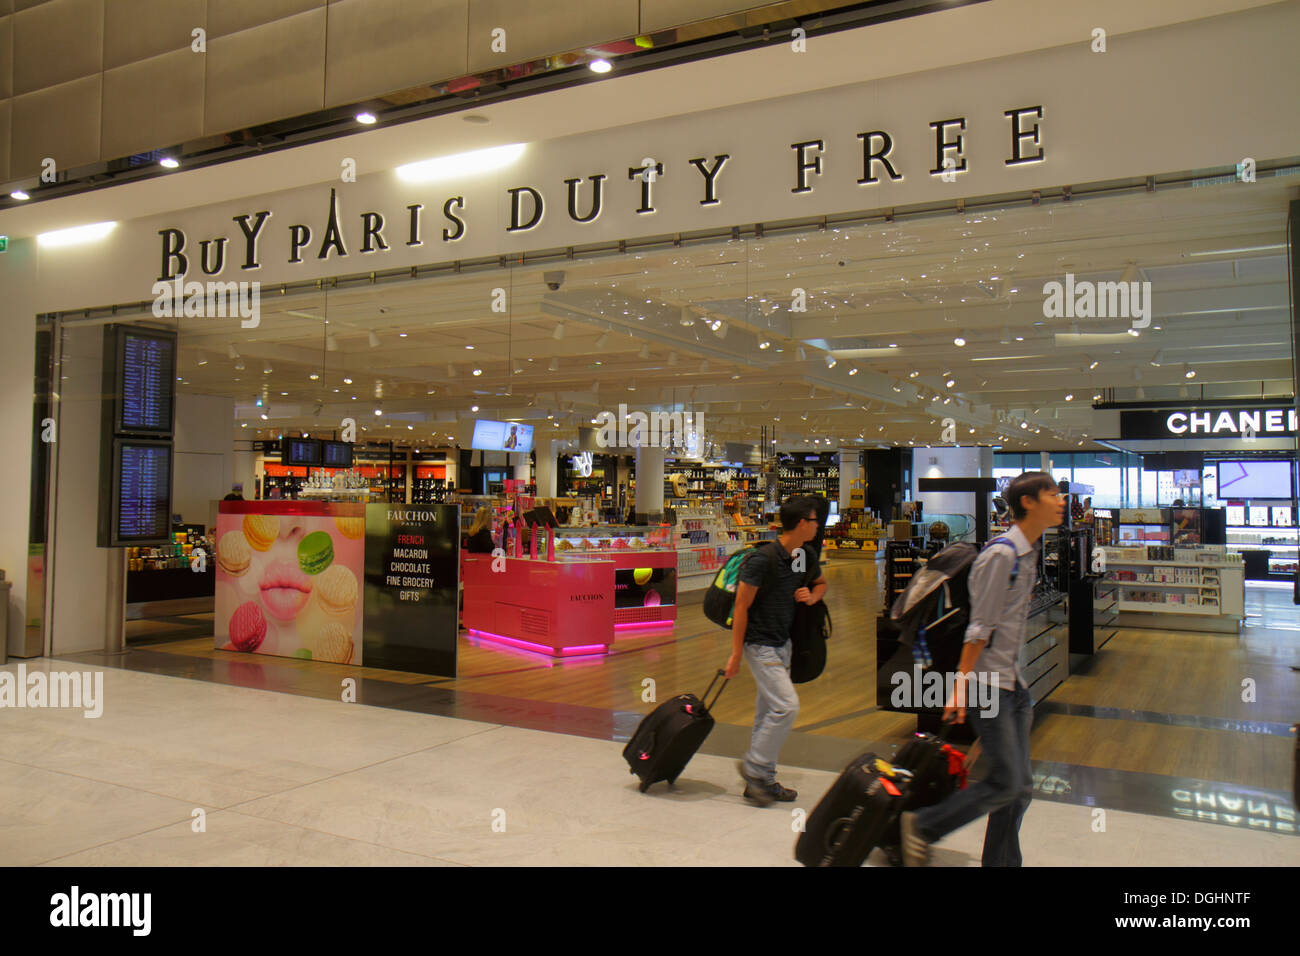 duty free shop airport from stock photos duty free shop airport from stock images alamy. Black Bedroom Furniture Sets. Home Design Ideas